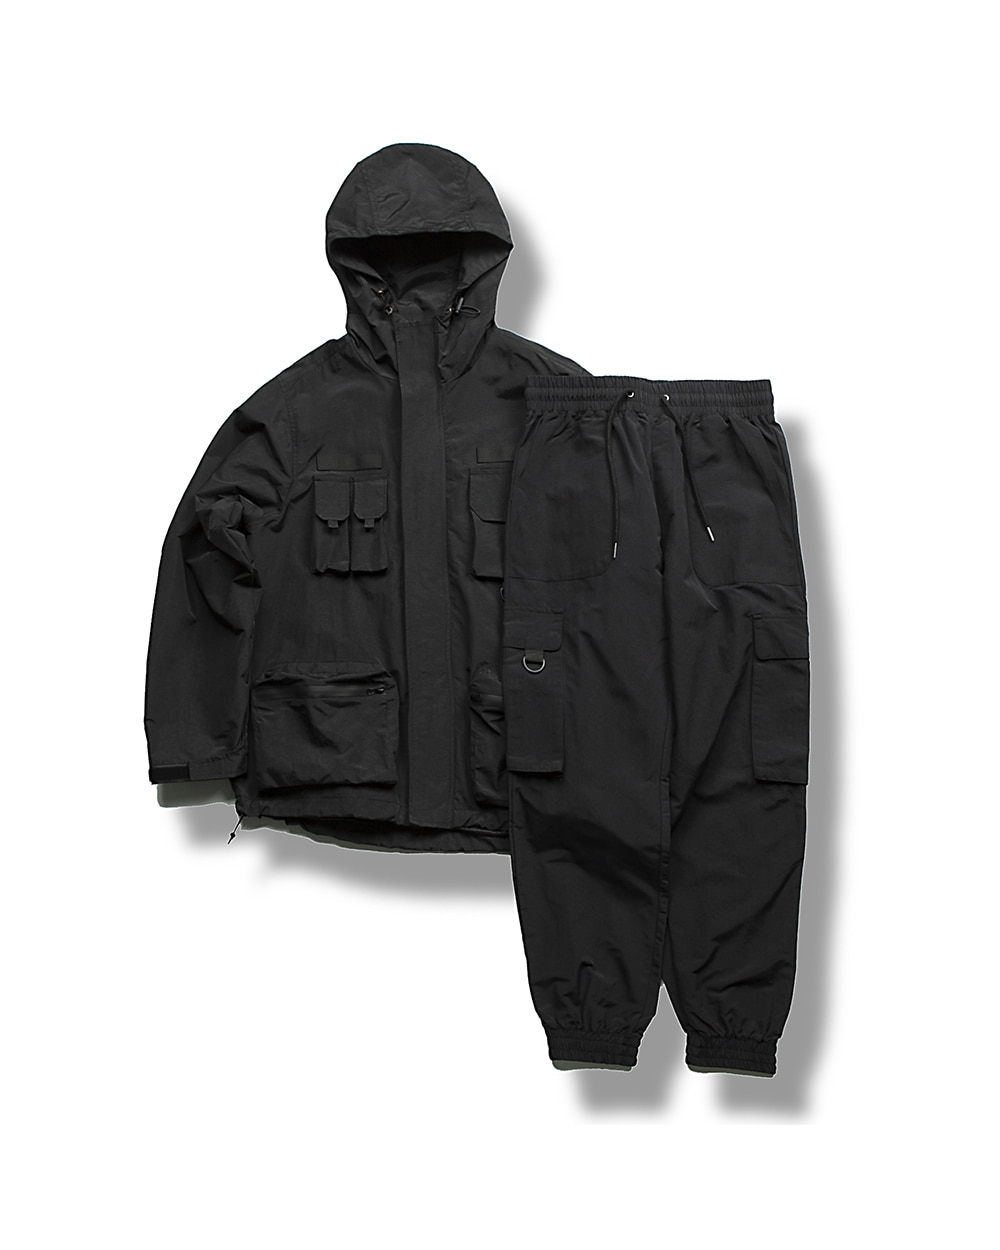 WATERPROOF SET-UP (WIND JACKET)